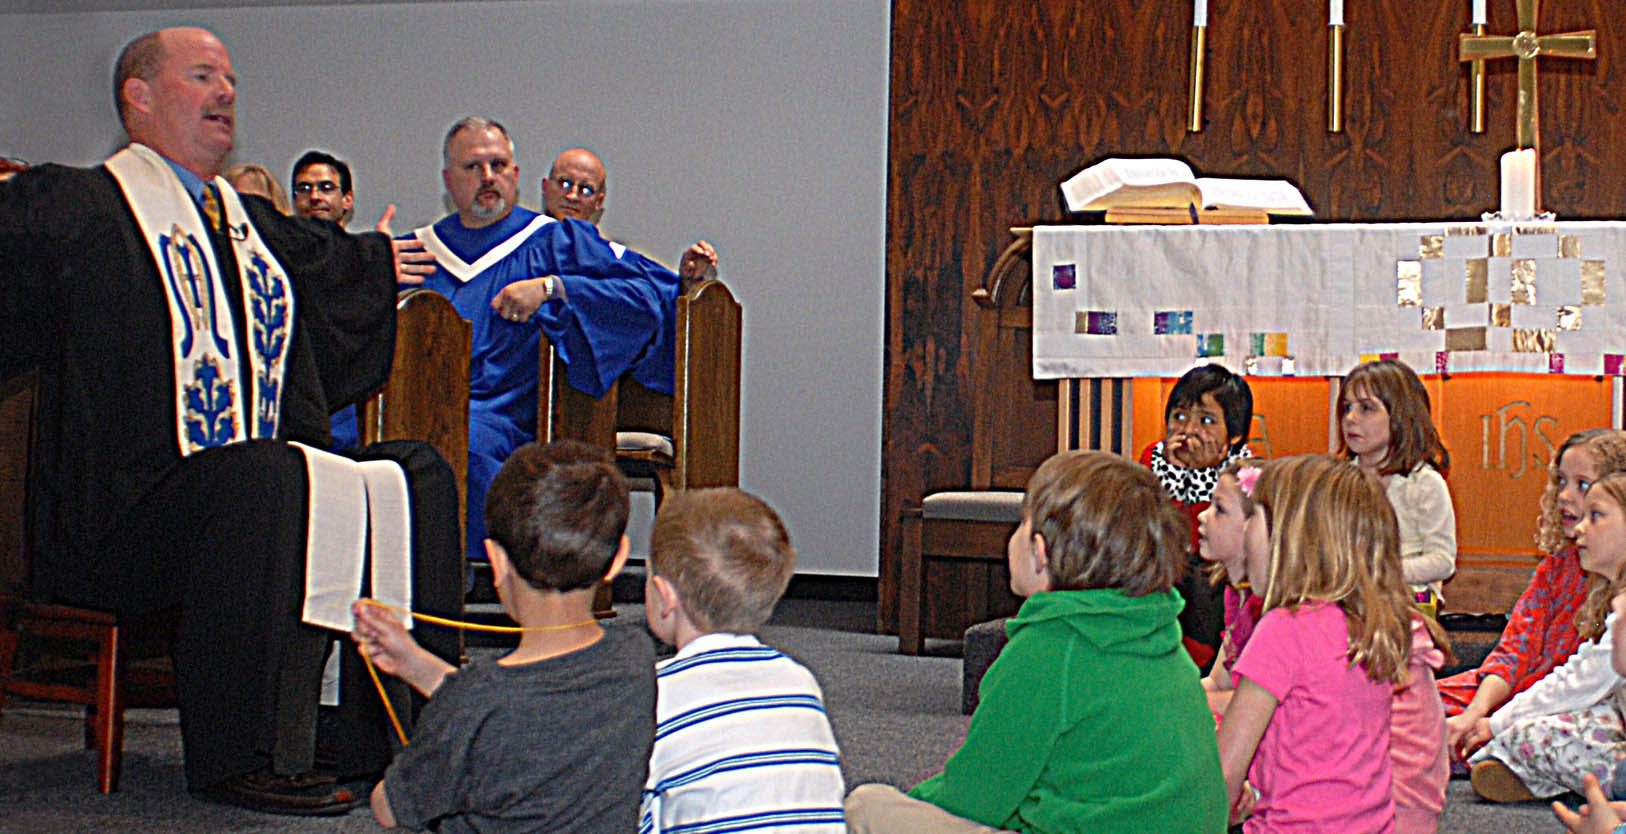 childrens-sermon-1b.jpg